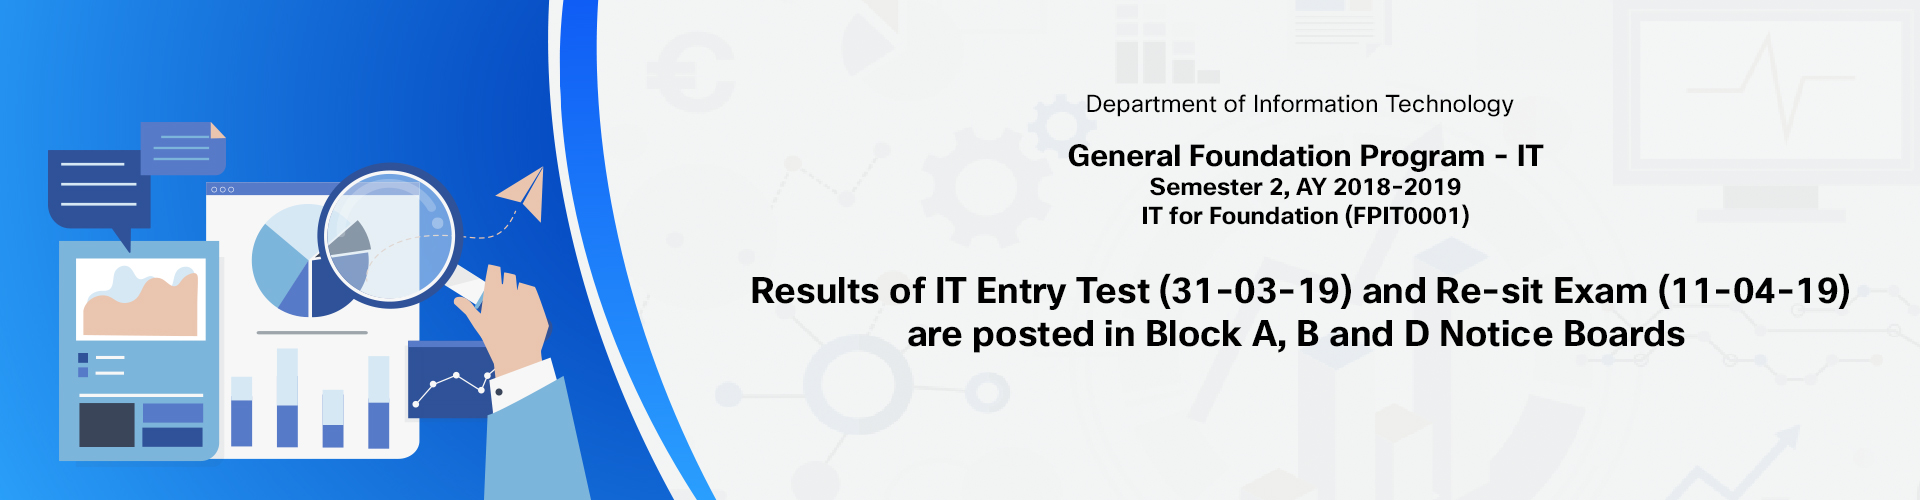 Results of IT Entry Test (31-03-19)